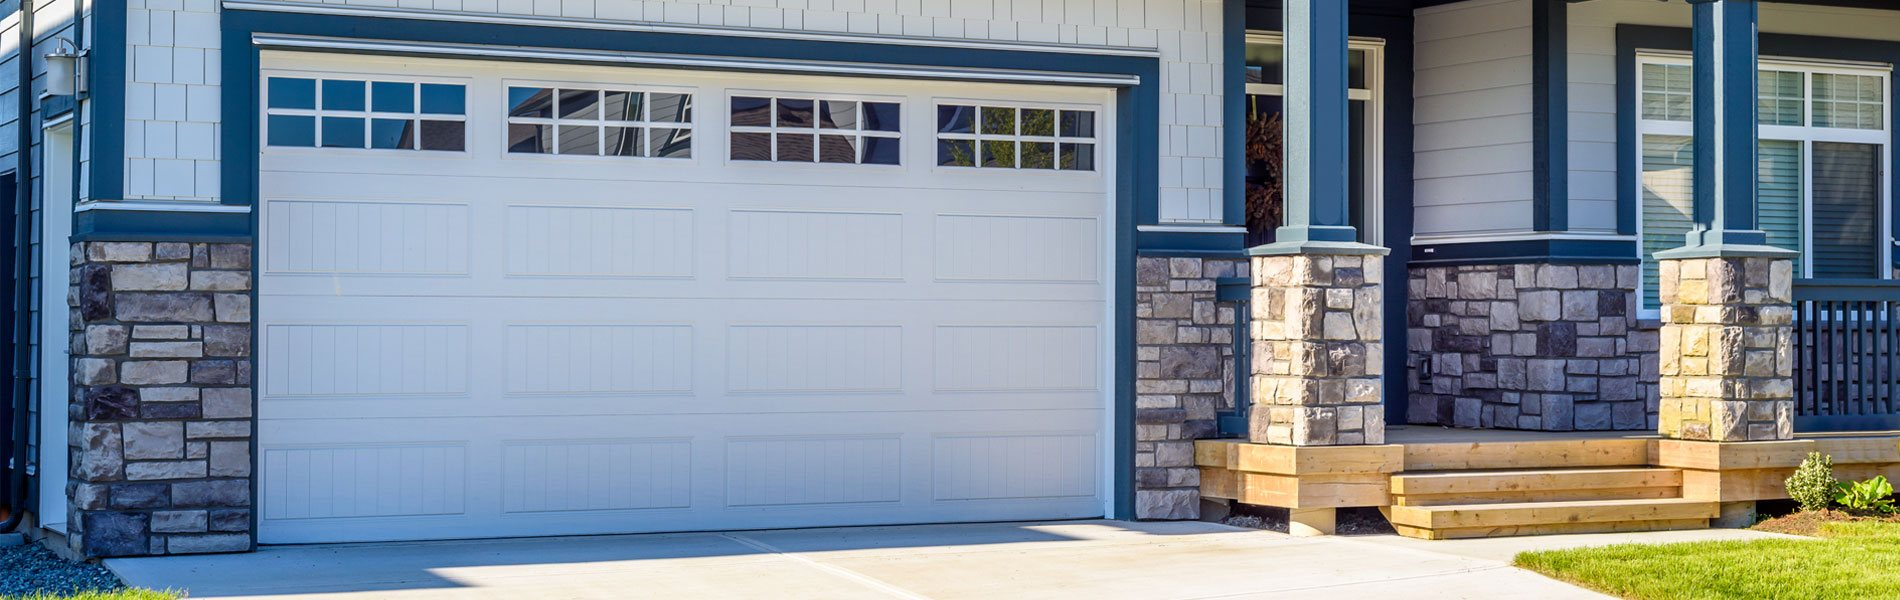 Neighborhood Garage Door Lemont, IL 630-634-0339